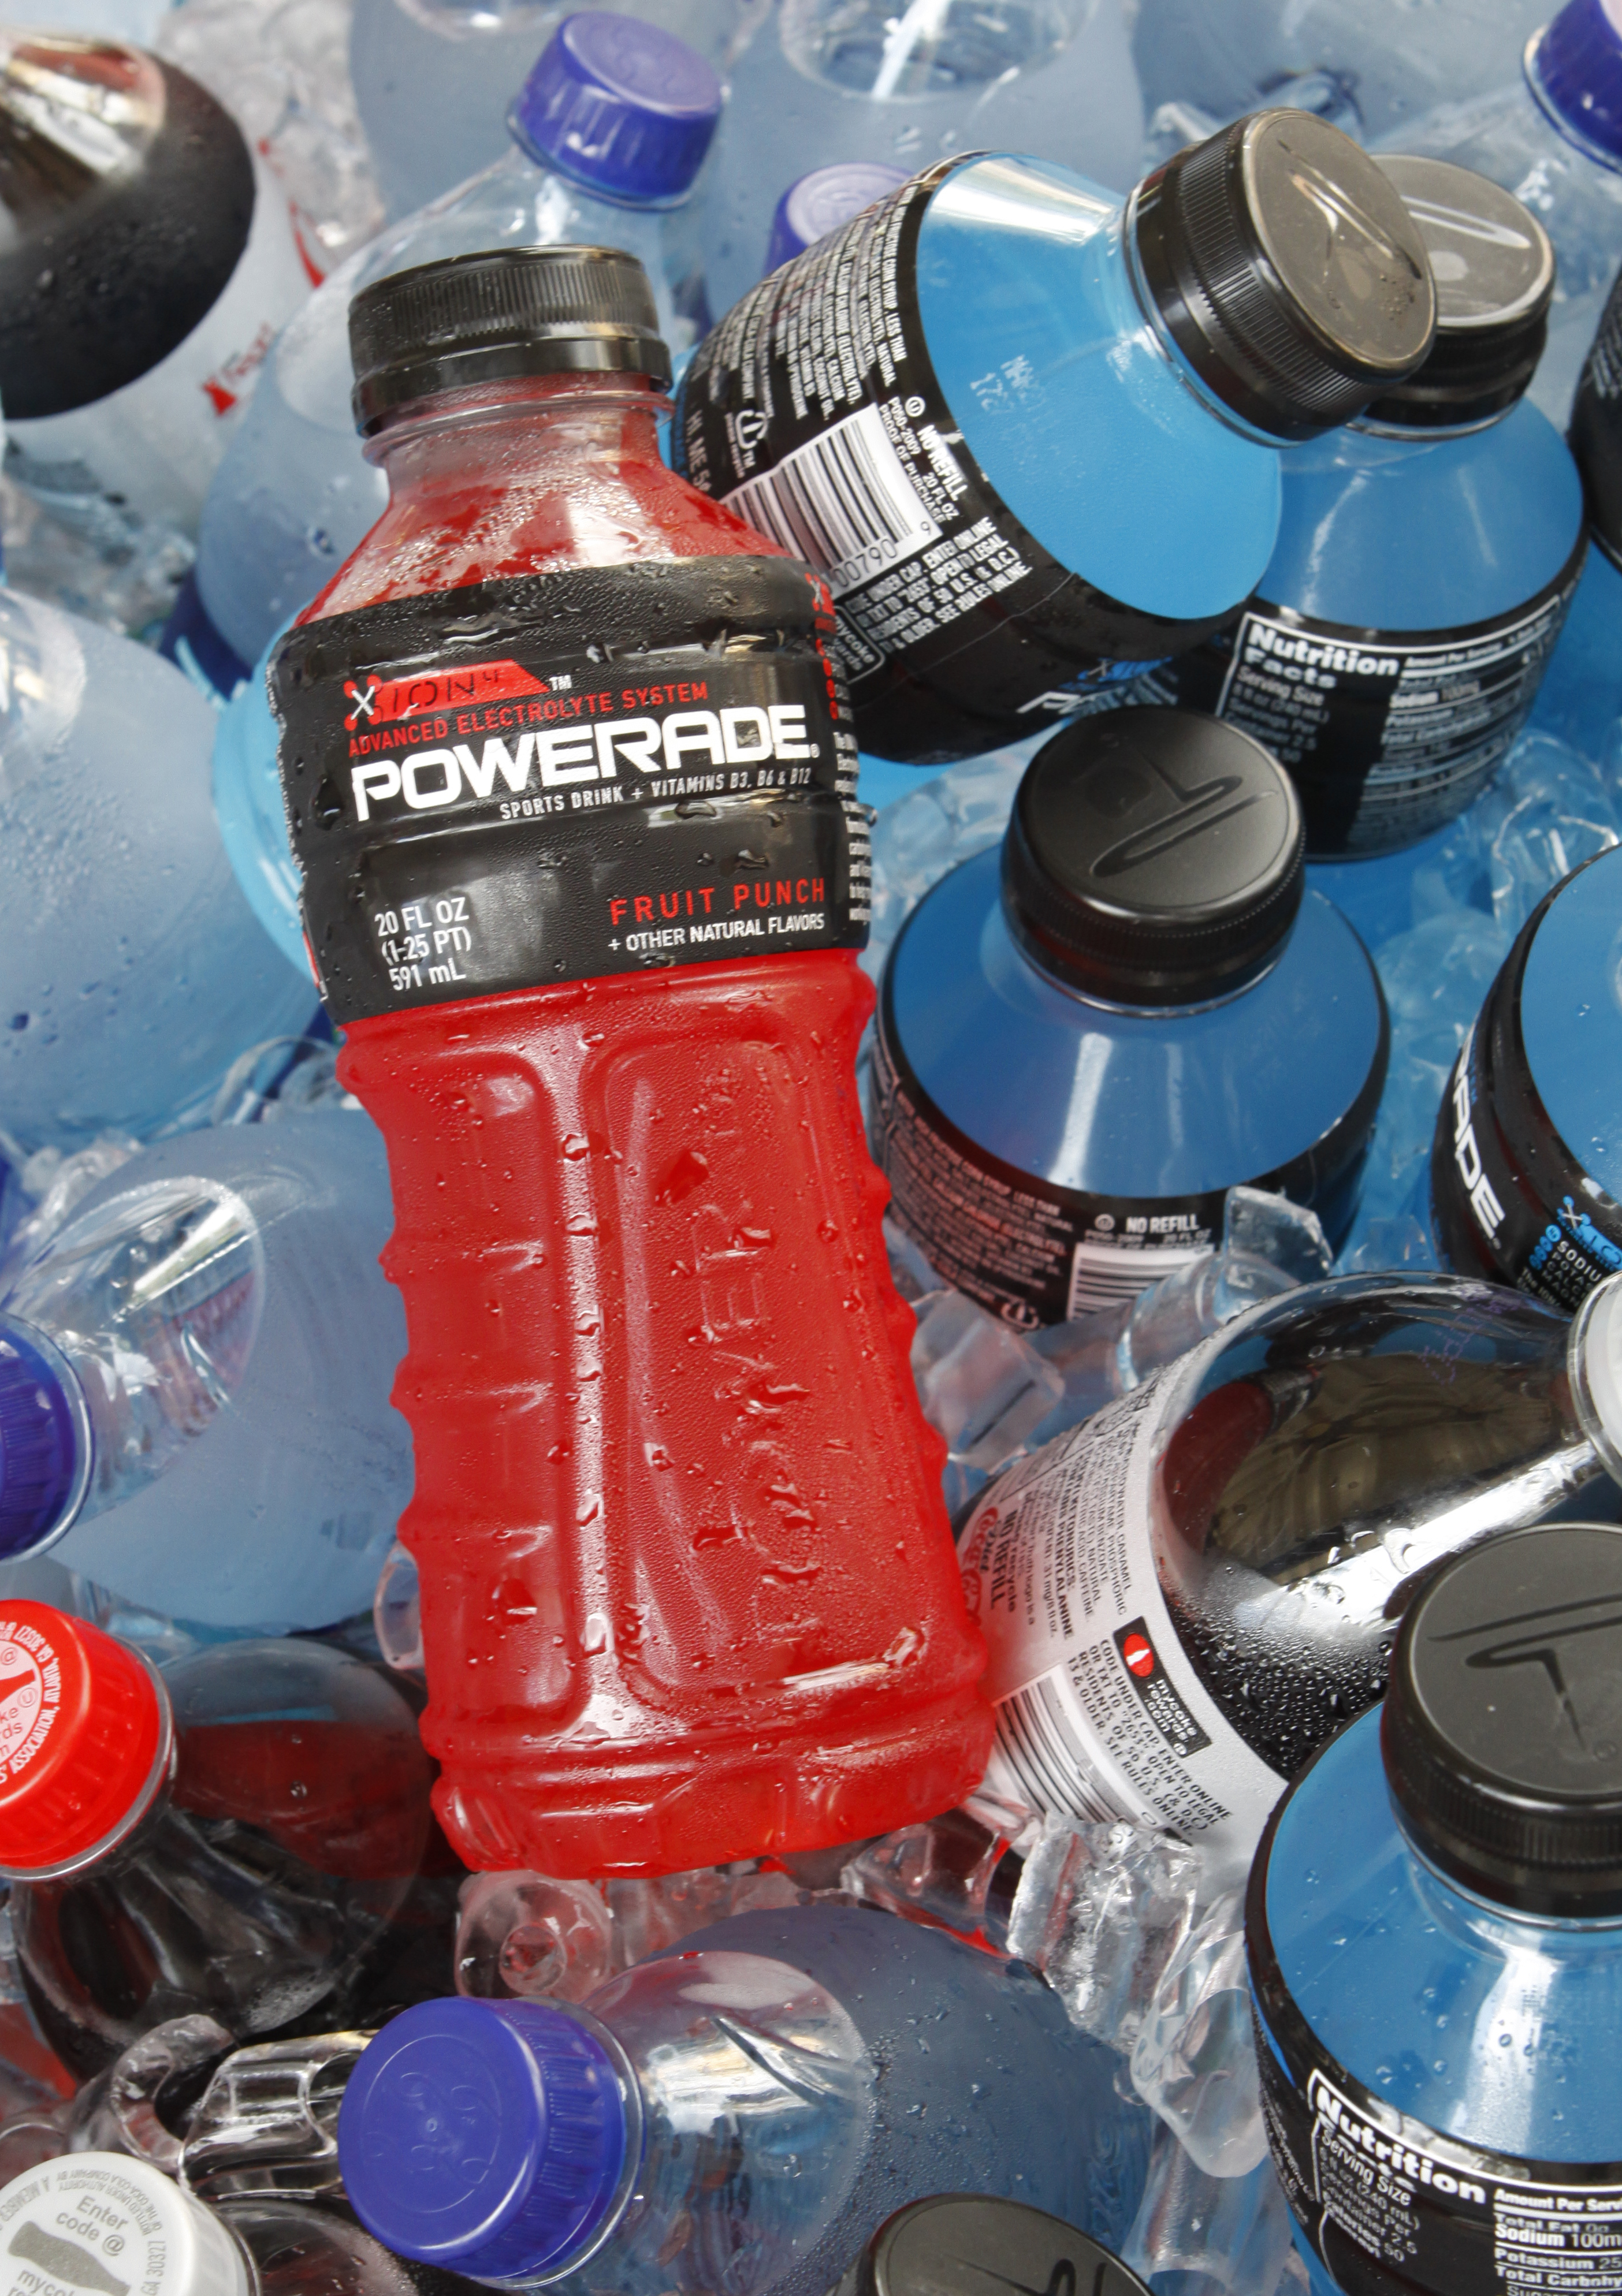 Bottles of Powerade and other Coca-Cola products in Orlando on Aug. 5, 2010.